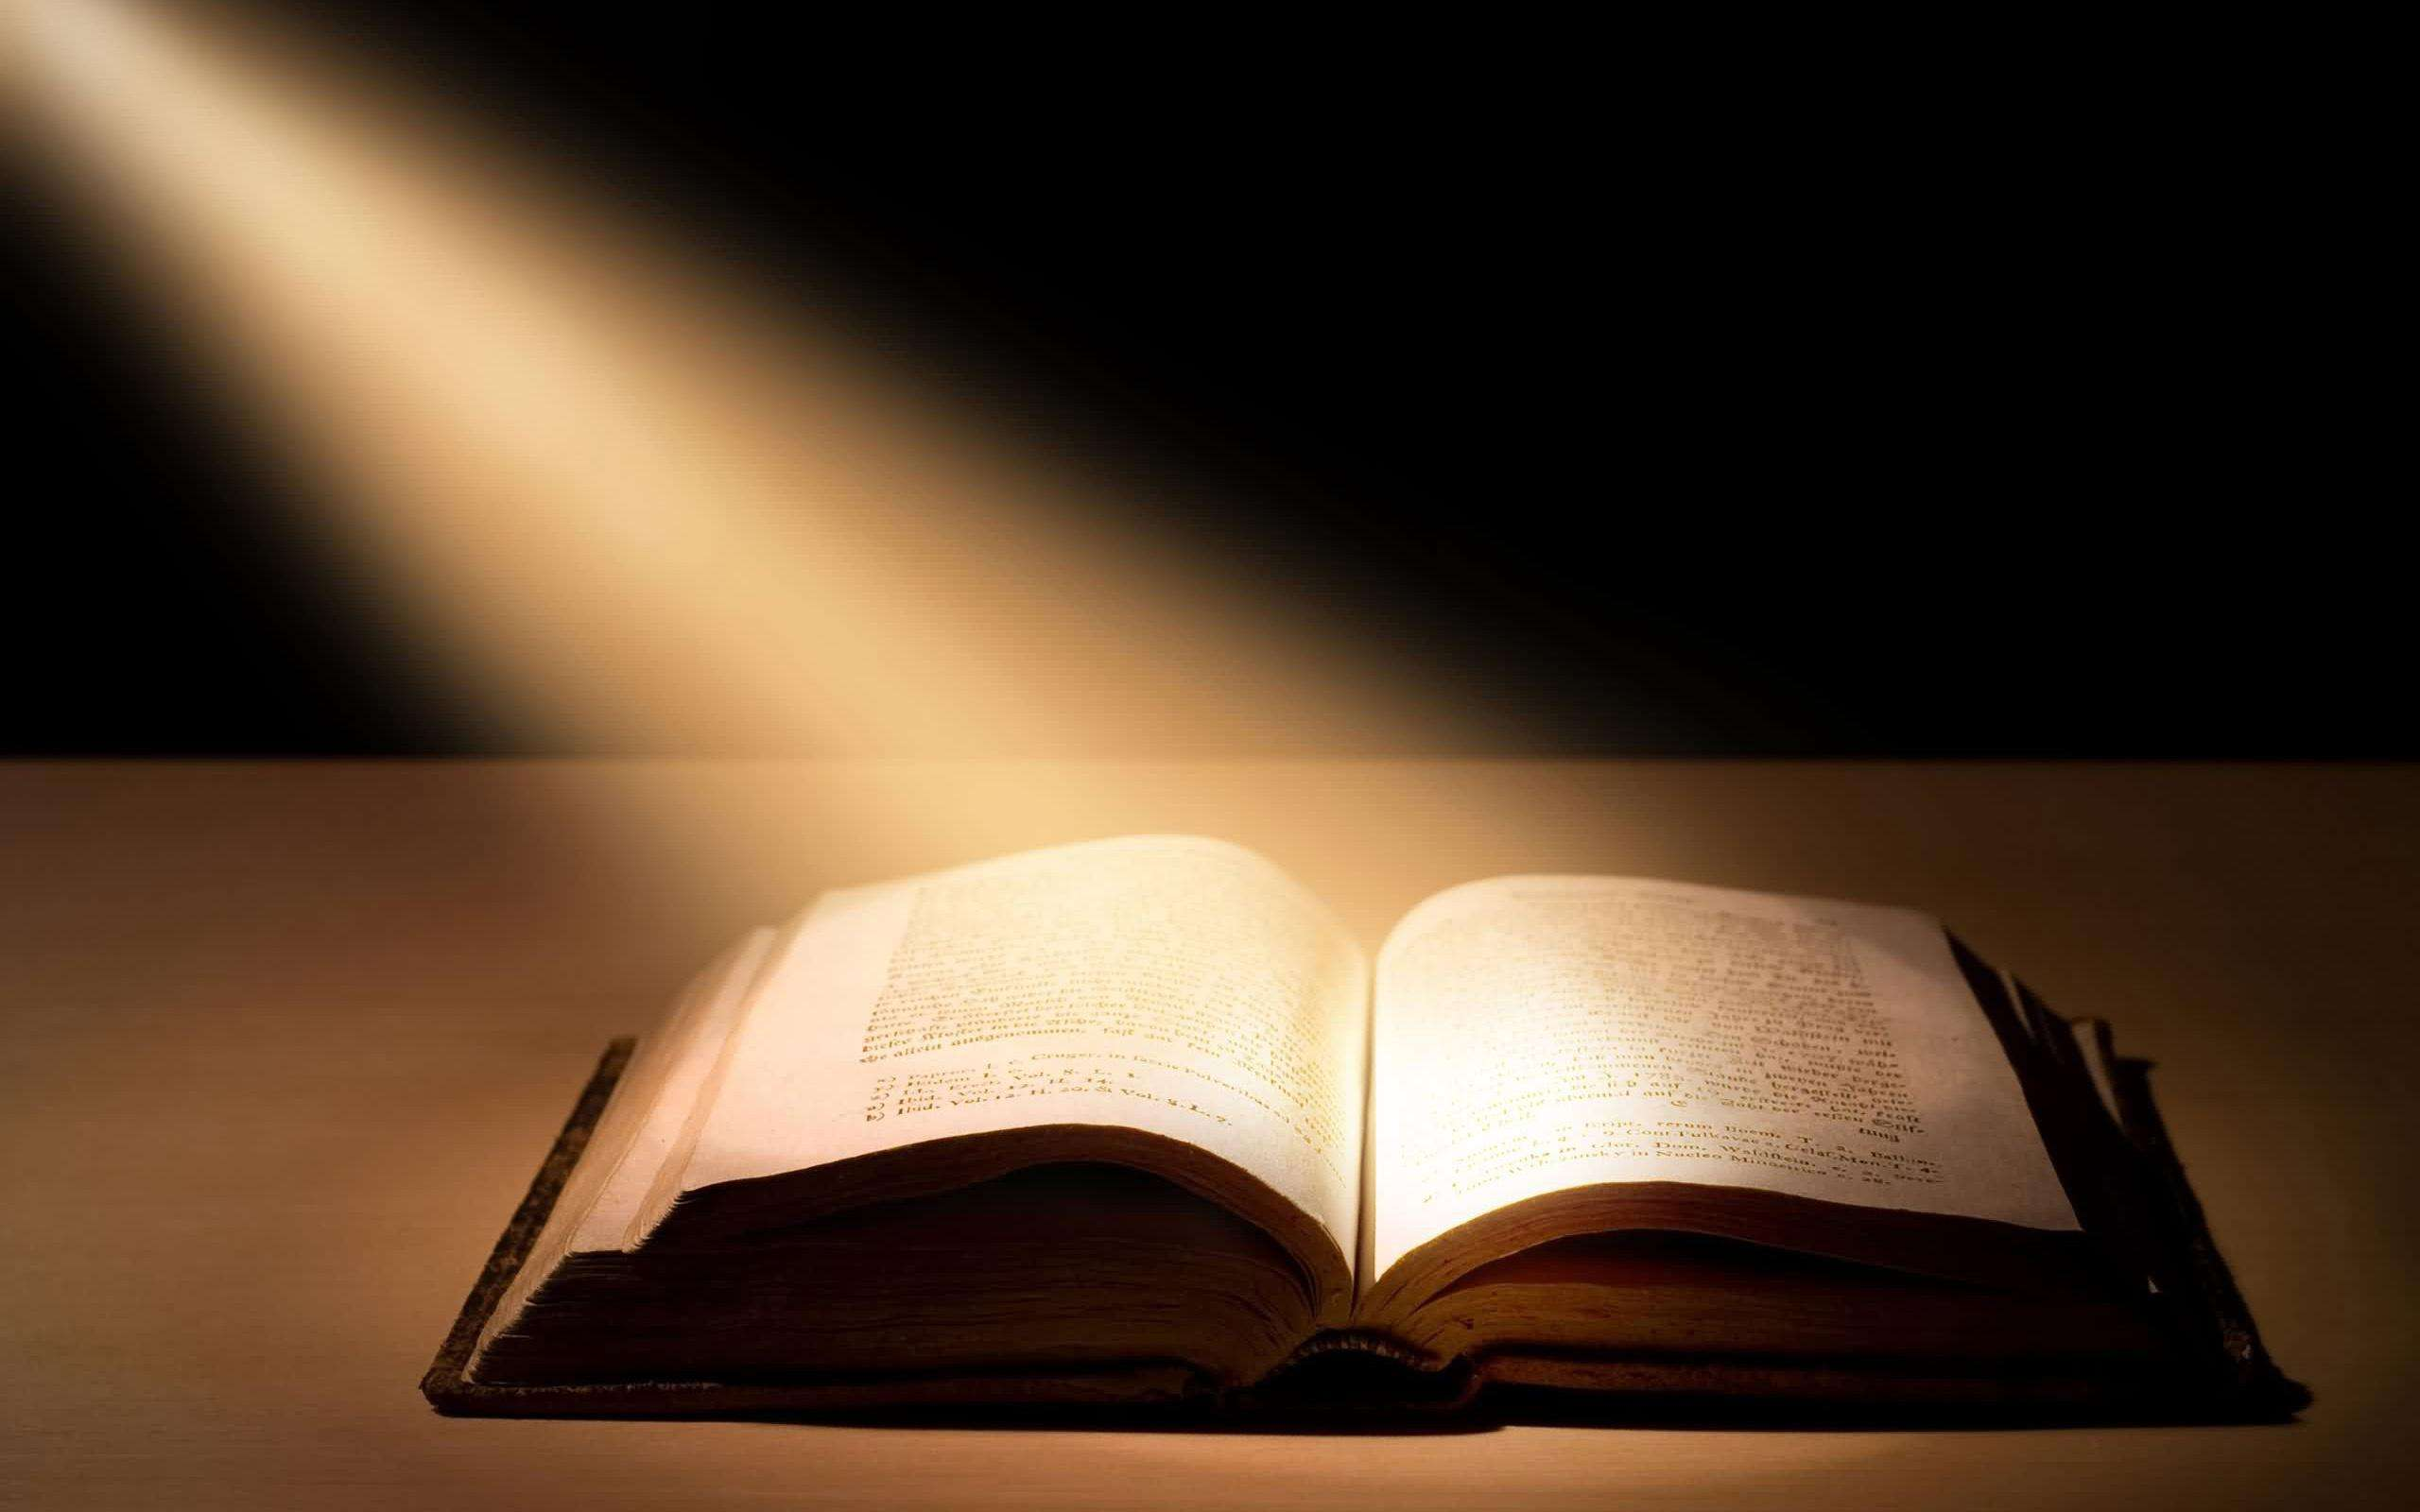 wallpapers religious christian bible light book abstract 2560x1600